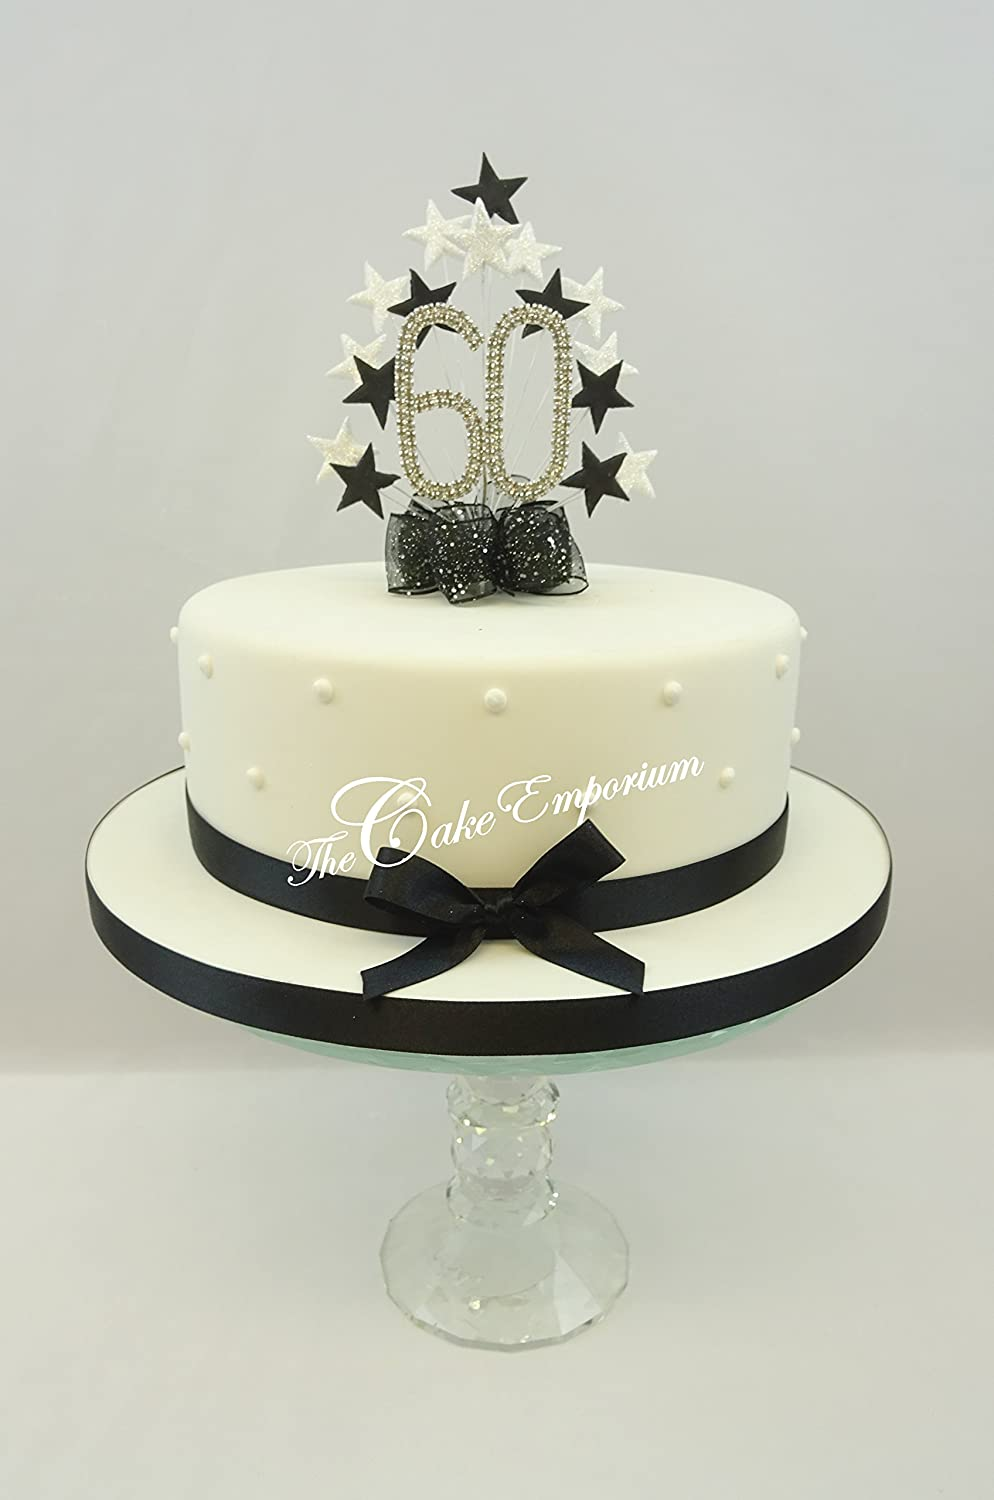 STAR AGE 60TH BIRTHDAY CAKE TOPPER IN SILVER AND BLACK - Handmade to ...